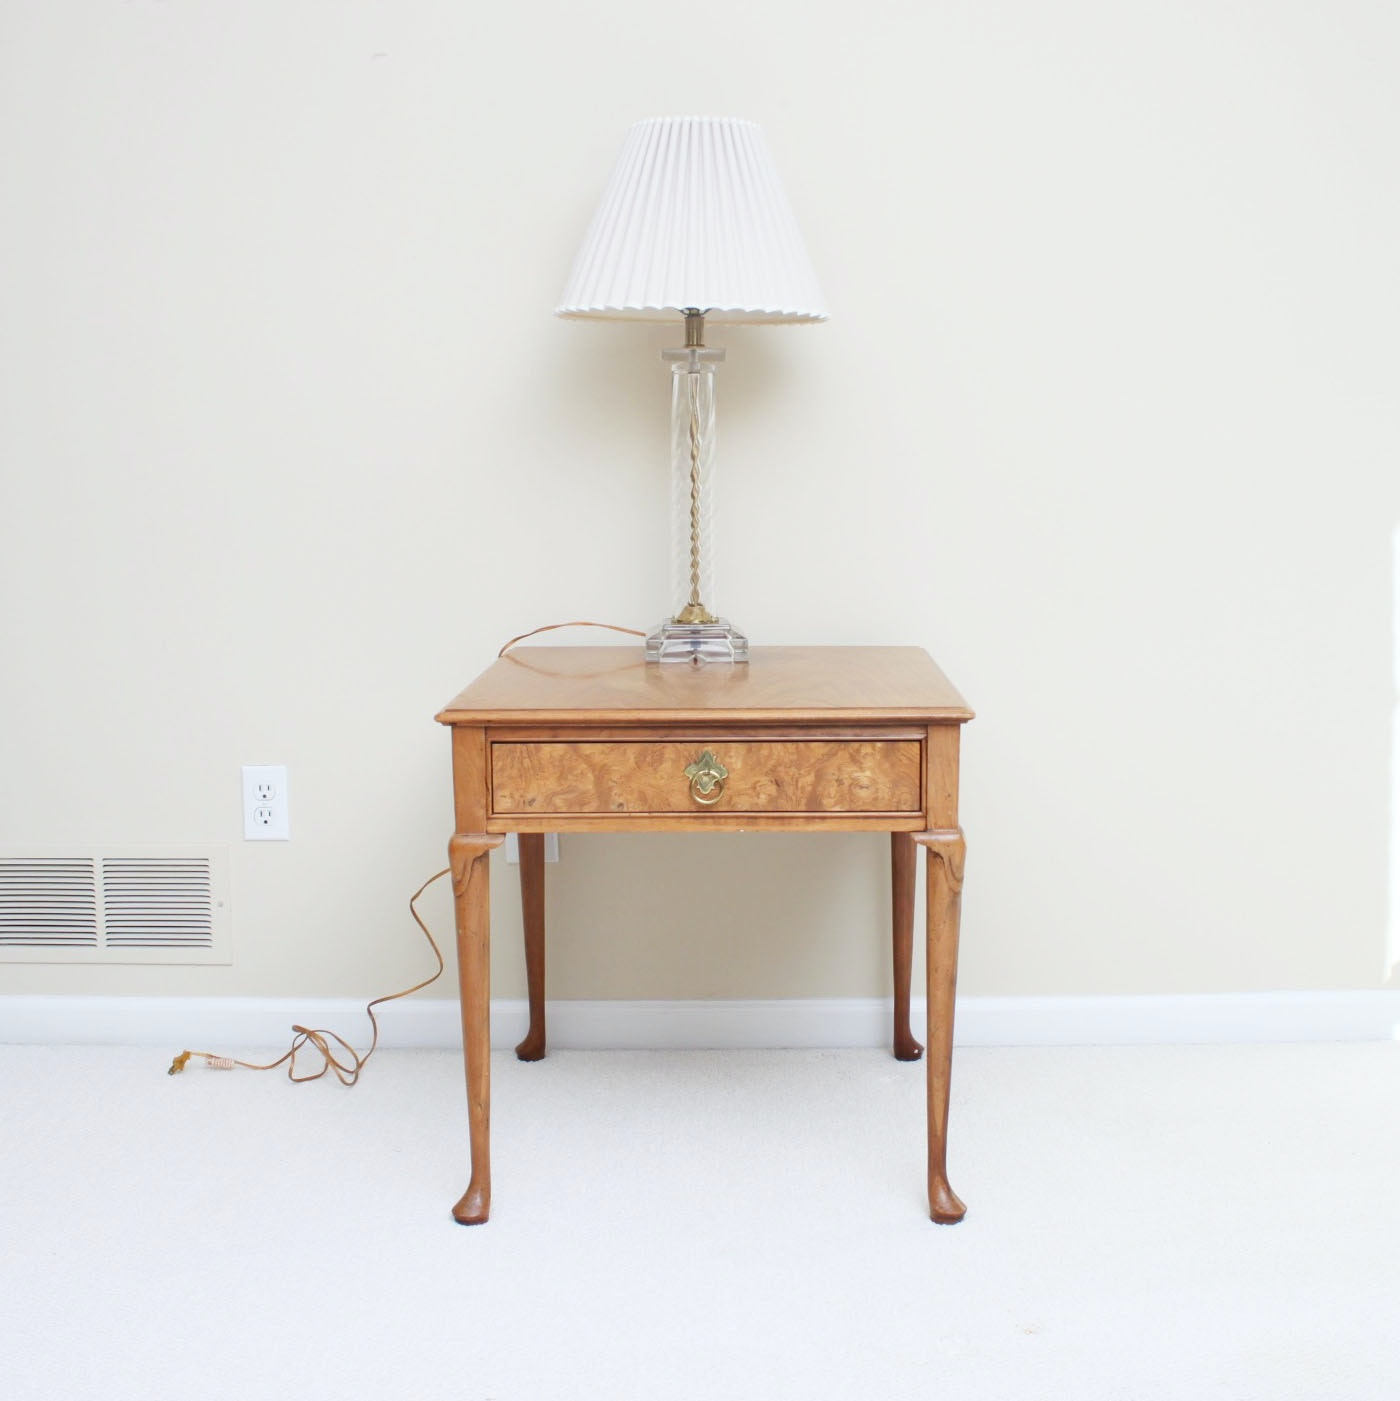 Vintage Chippendale Style Side Table by Baker Furniture with Table Lamp